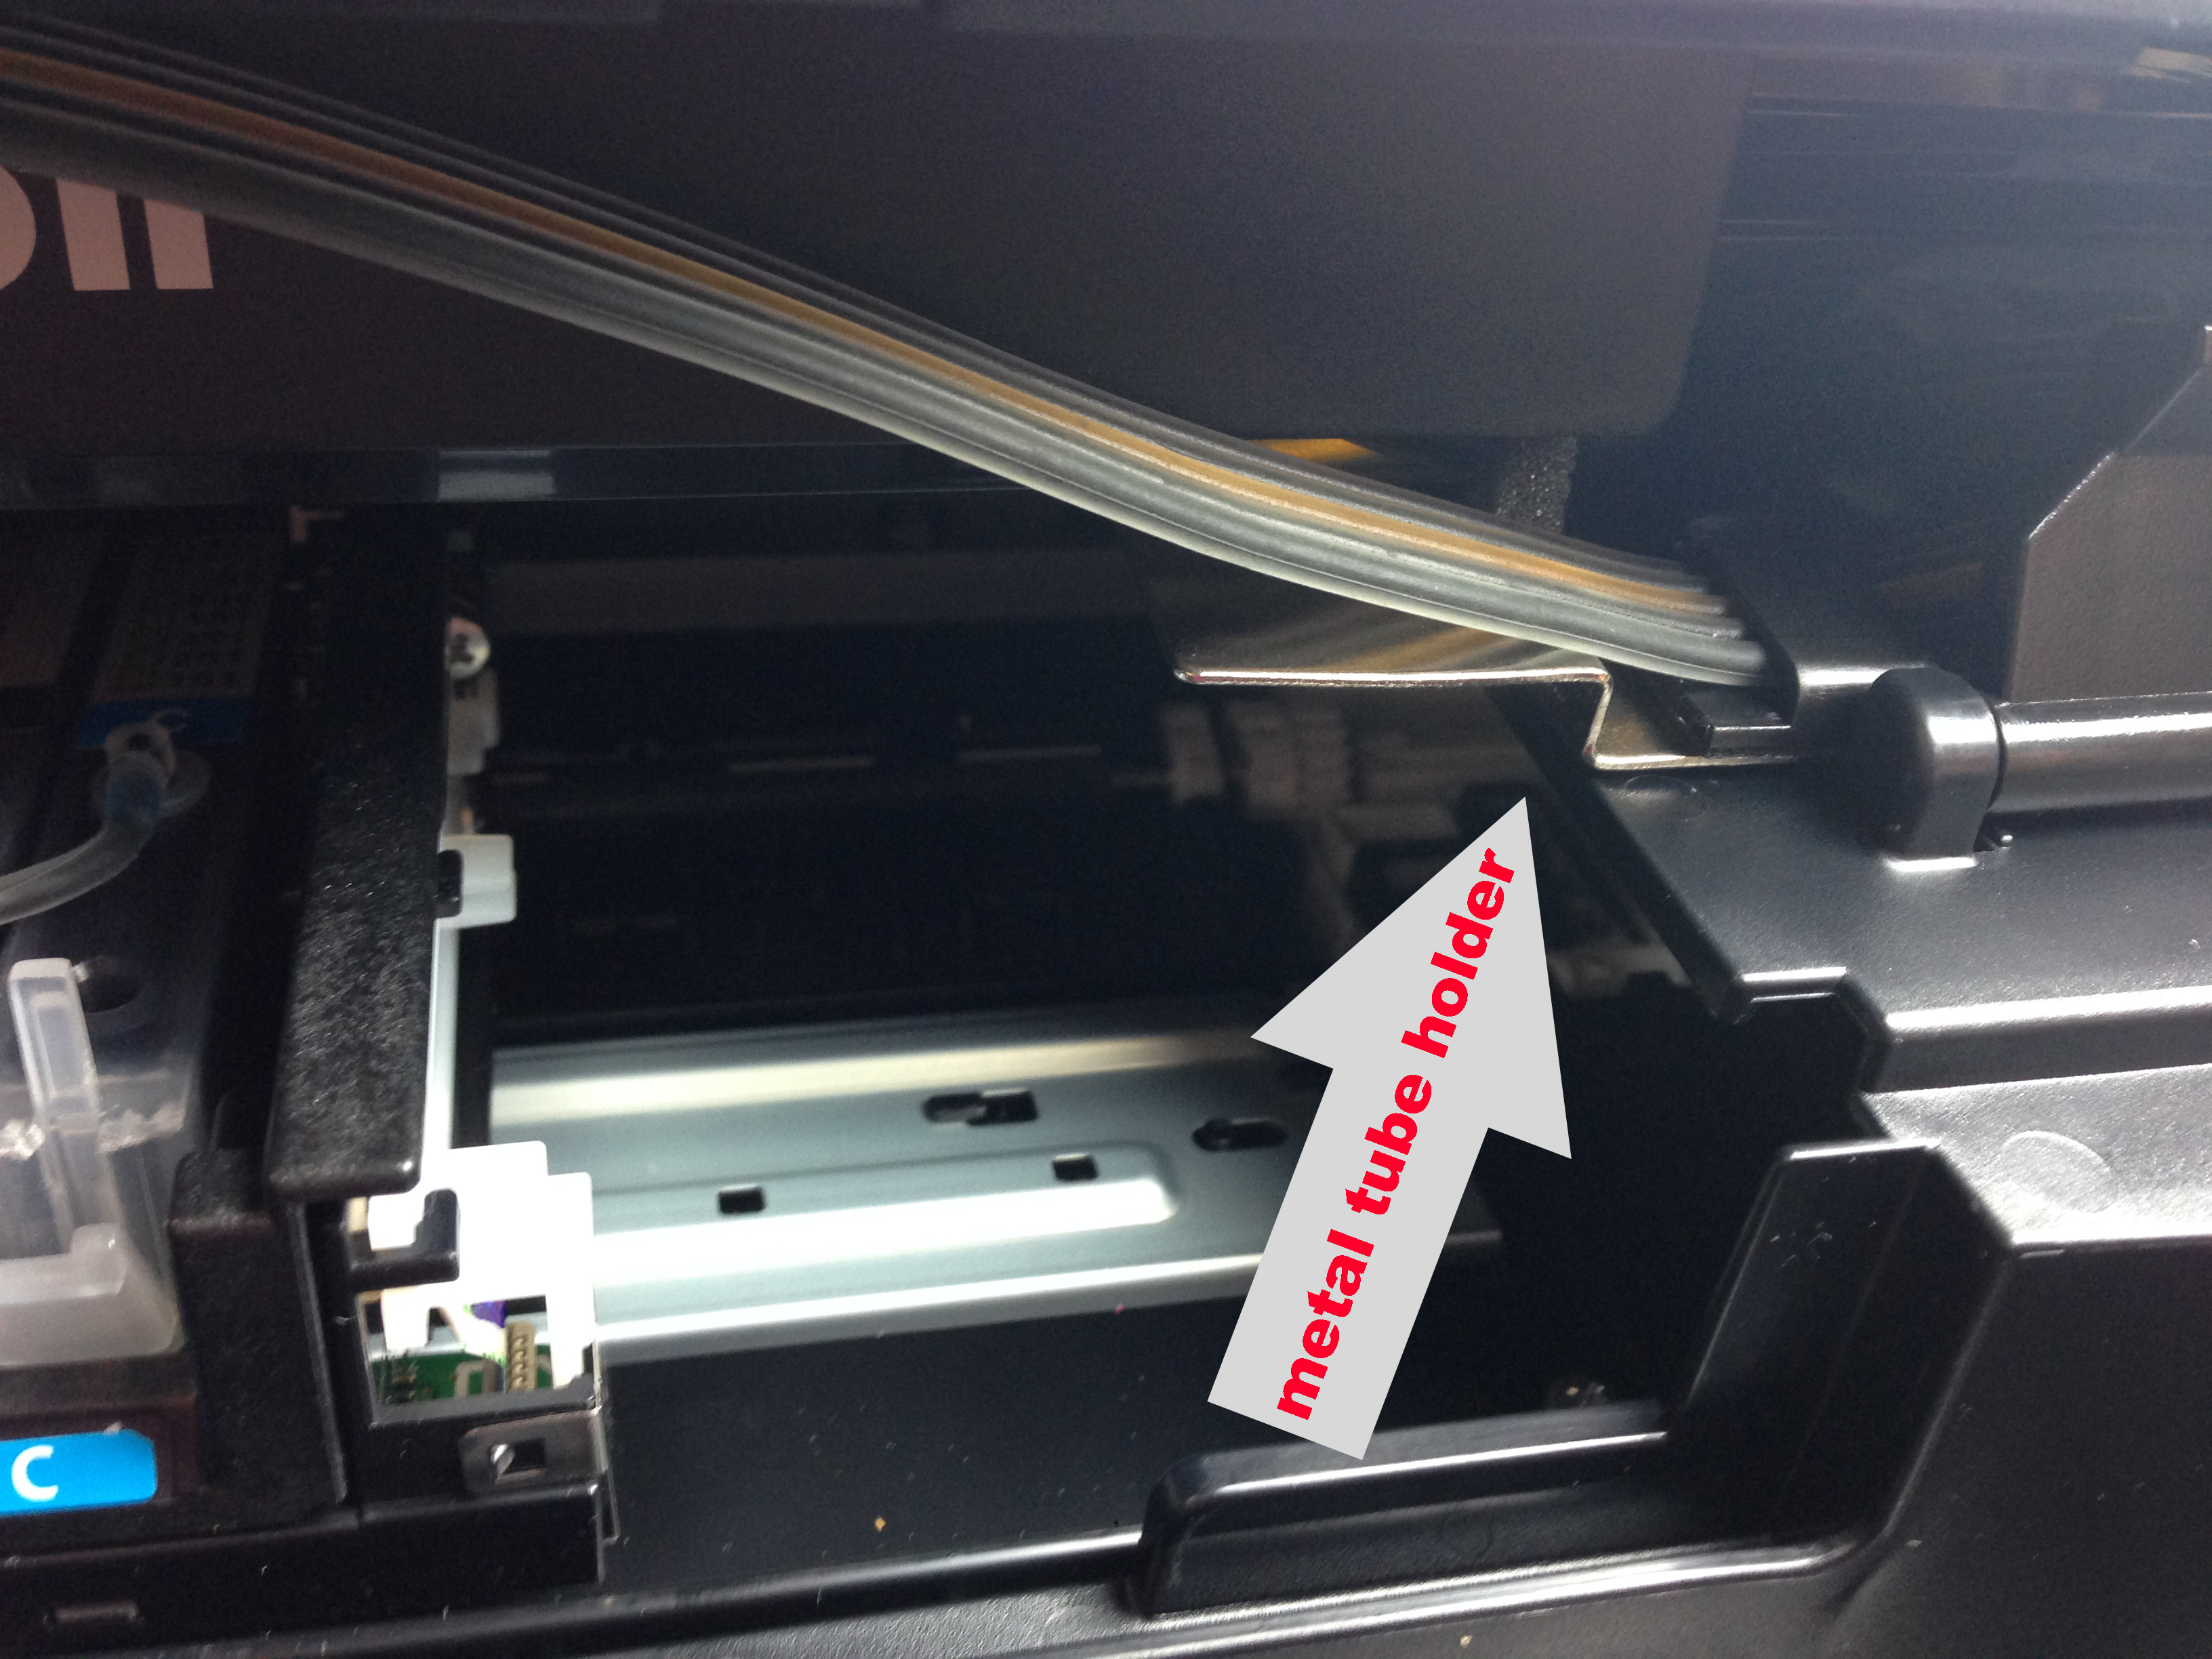 new update for canon printers